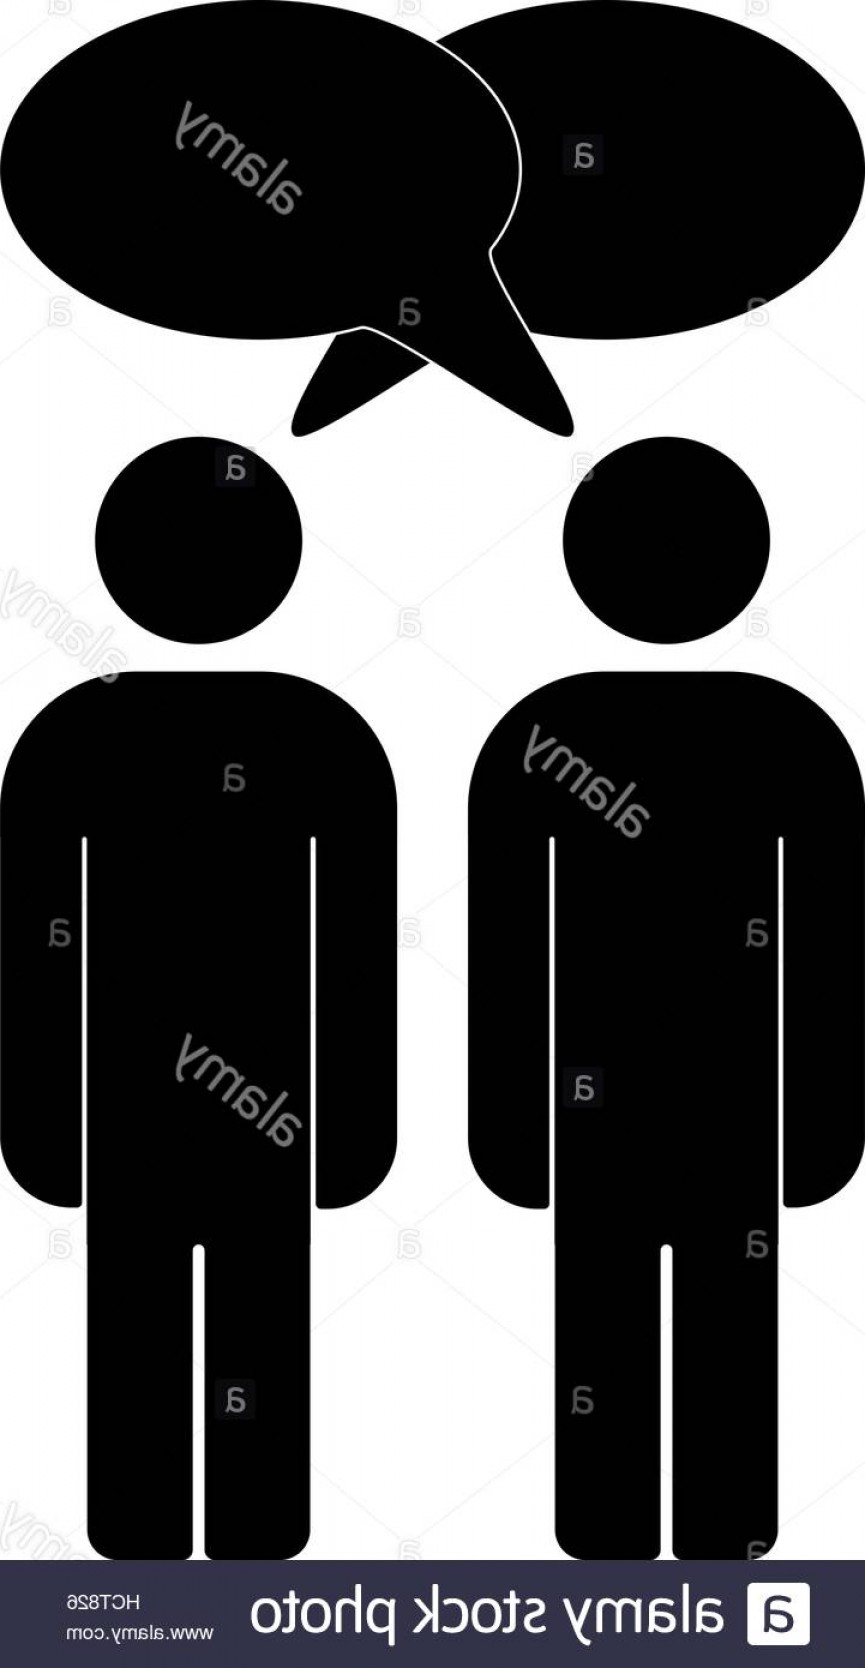 Two People Talking Vector Art: Stock Photo Vector Illustration Of Two People Talk Face To Face Communication